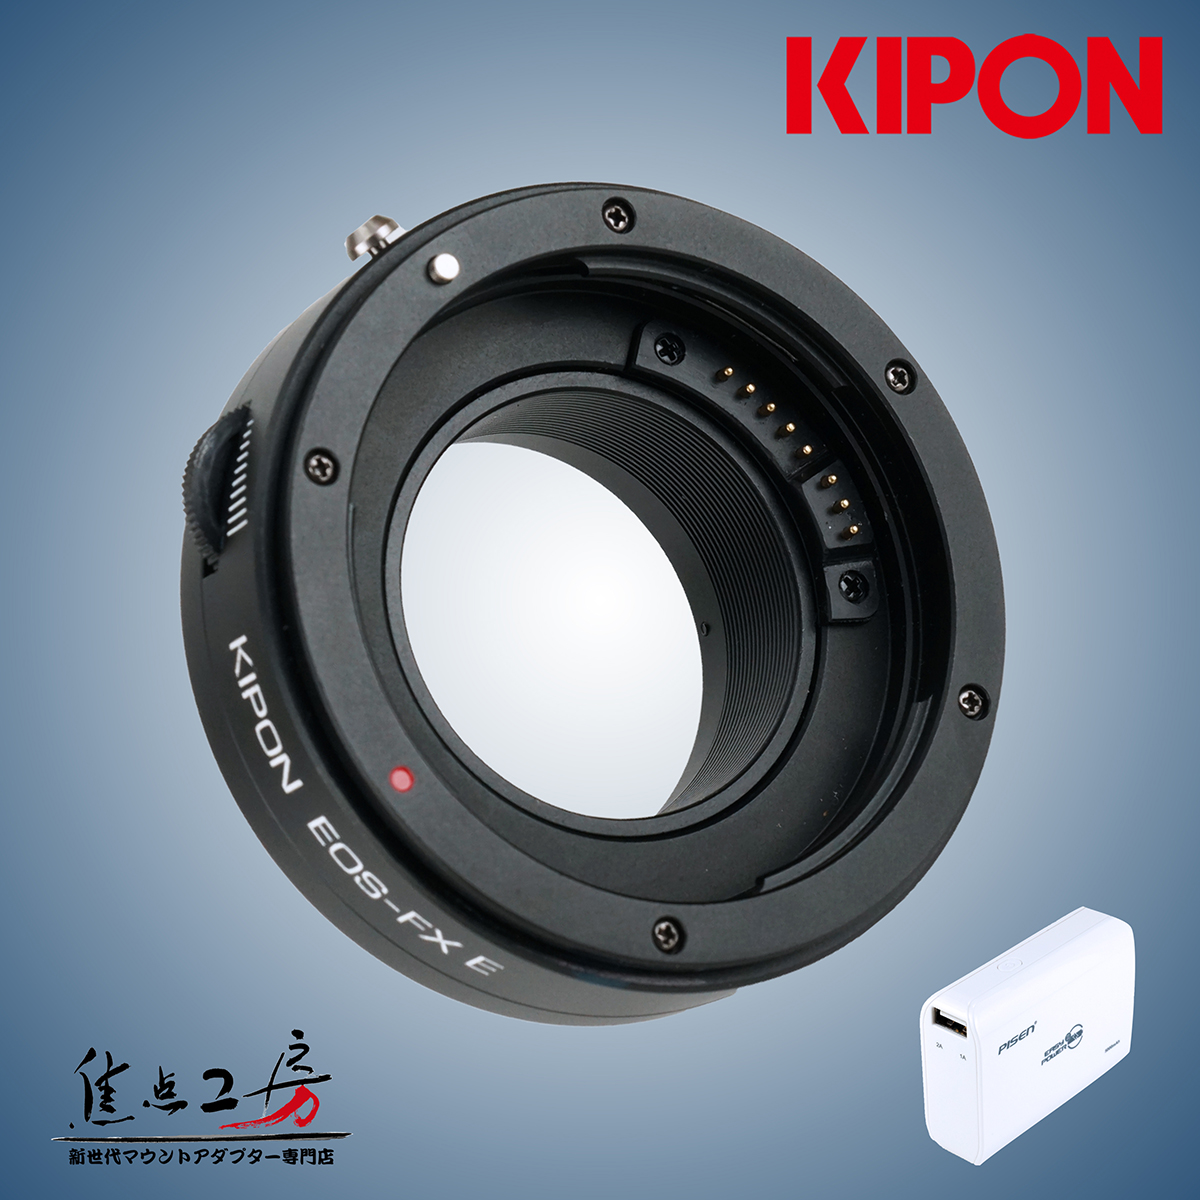 It is with electronic mount adapter mobile battery for KIPON( キポン) Canon EF mount lens - Fuji Film X mounts